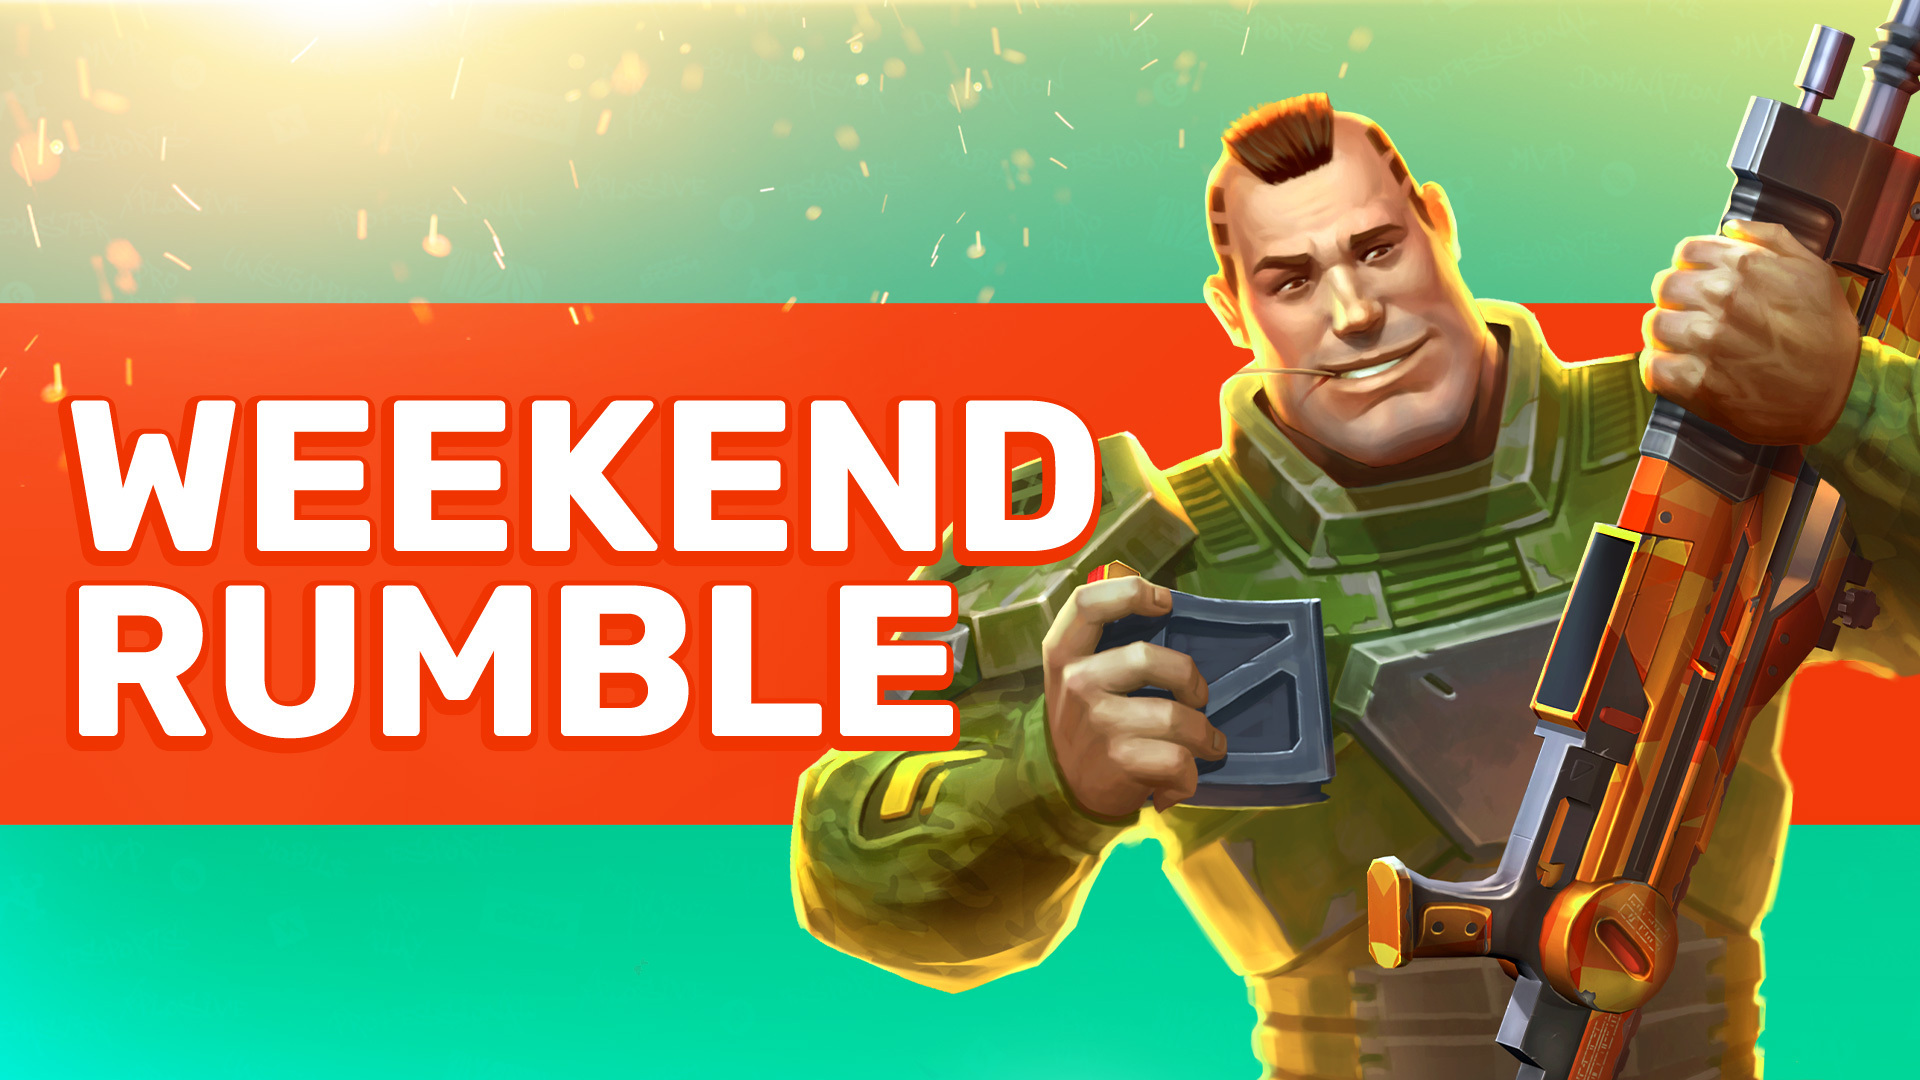 5ffdbd88256b7_WeekendRumble_header_1920x1080